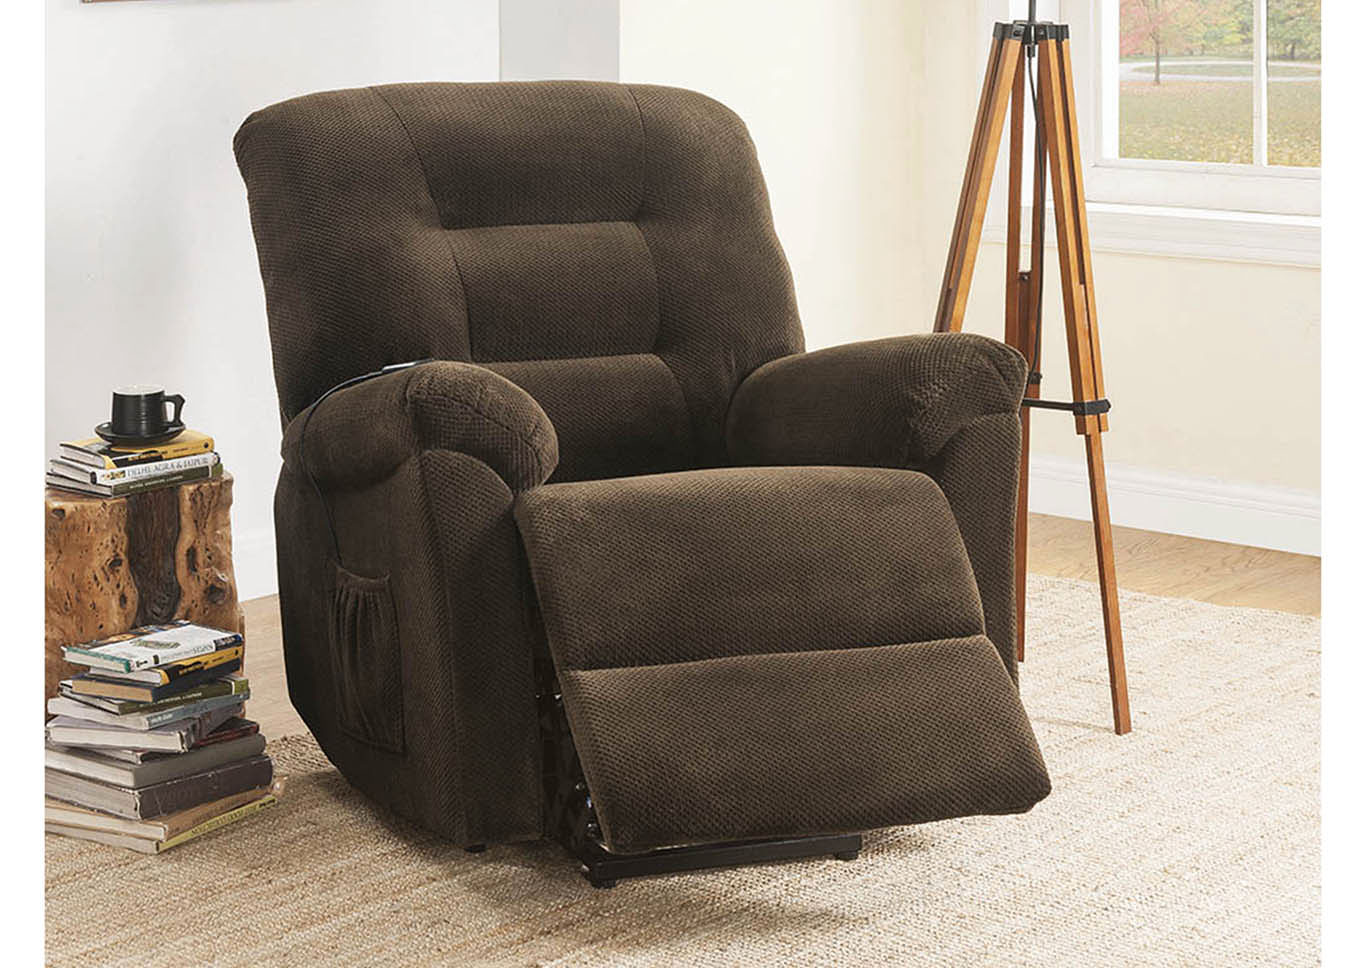 Chocolate Power Lift Recliner,Coaster Furniture